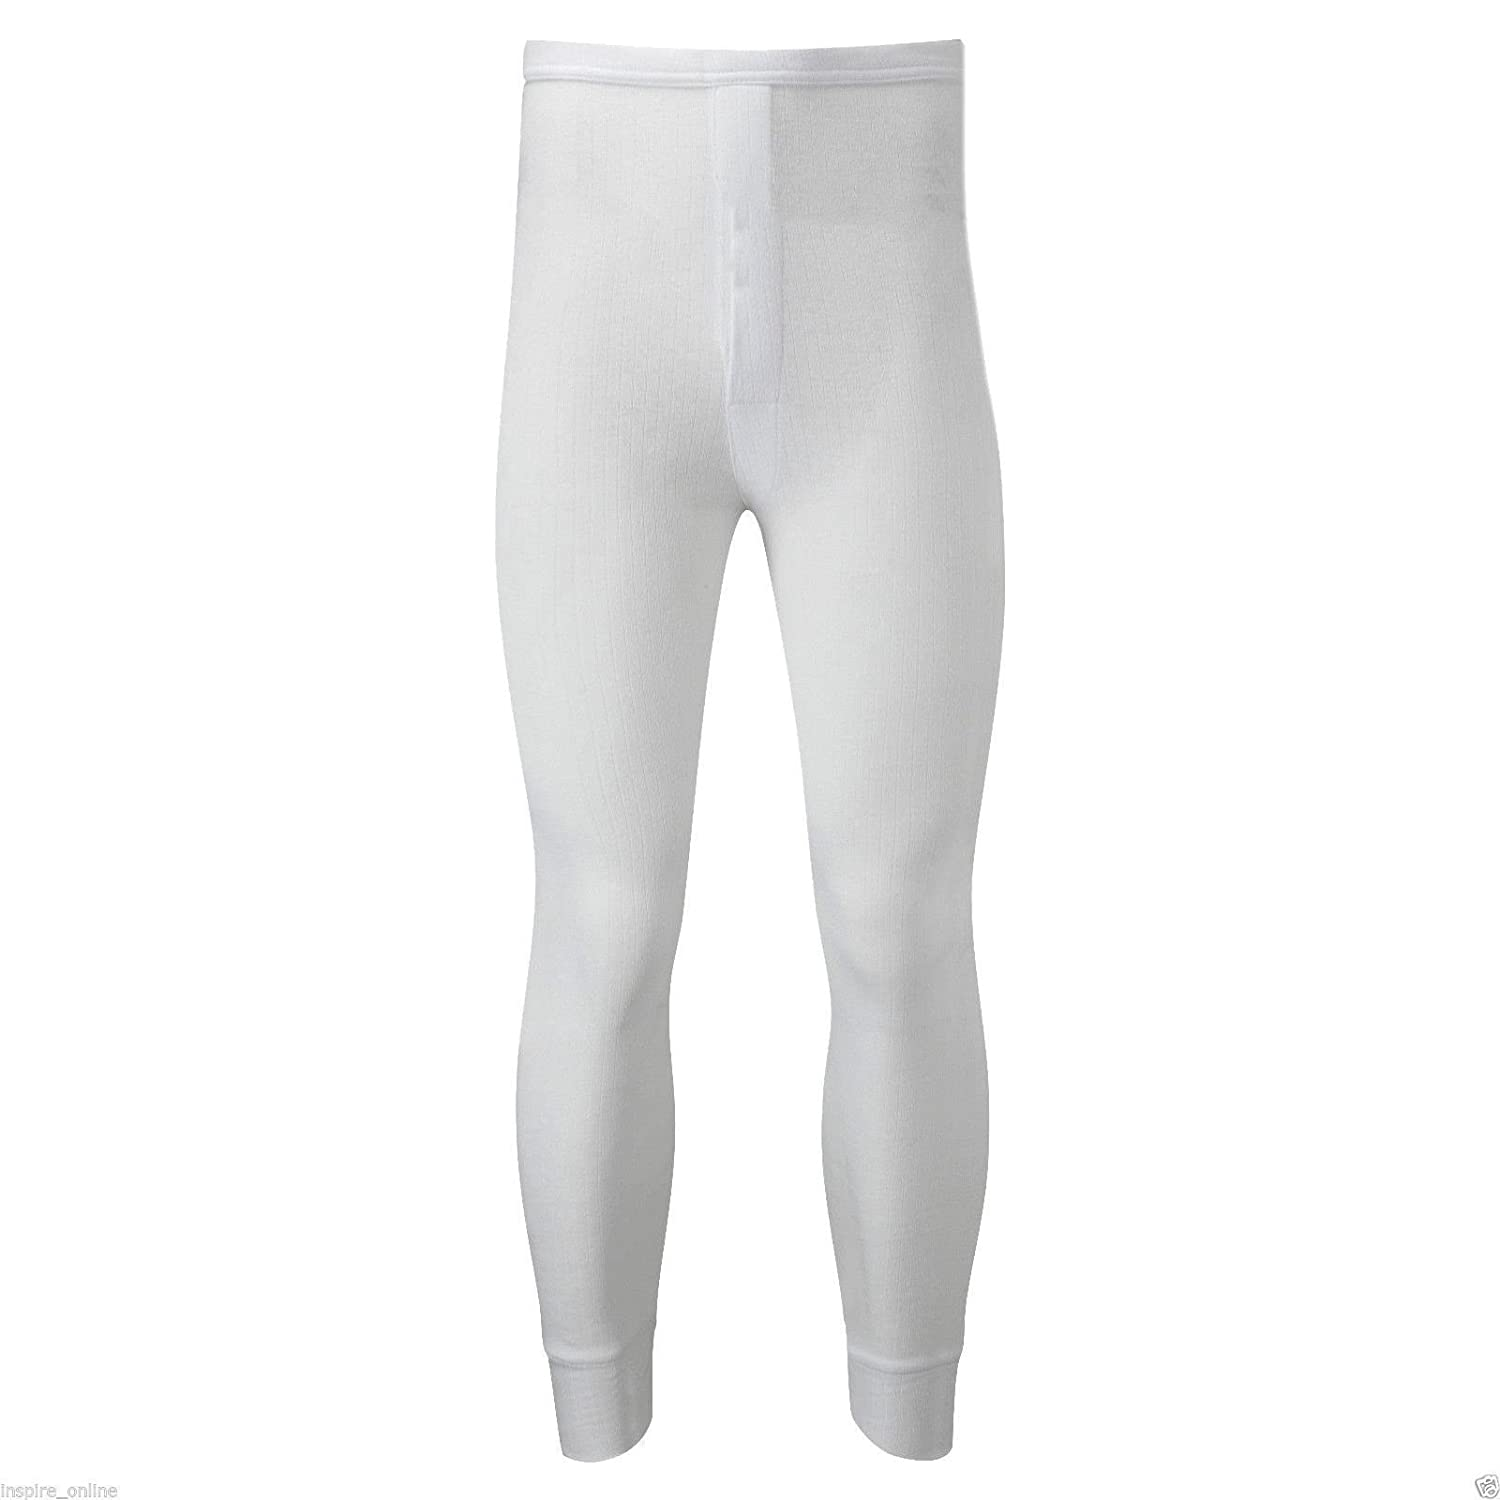 Classic Mens Base Layer Warm Thermal Long John Underwear Ski Wear